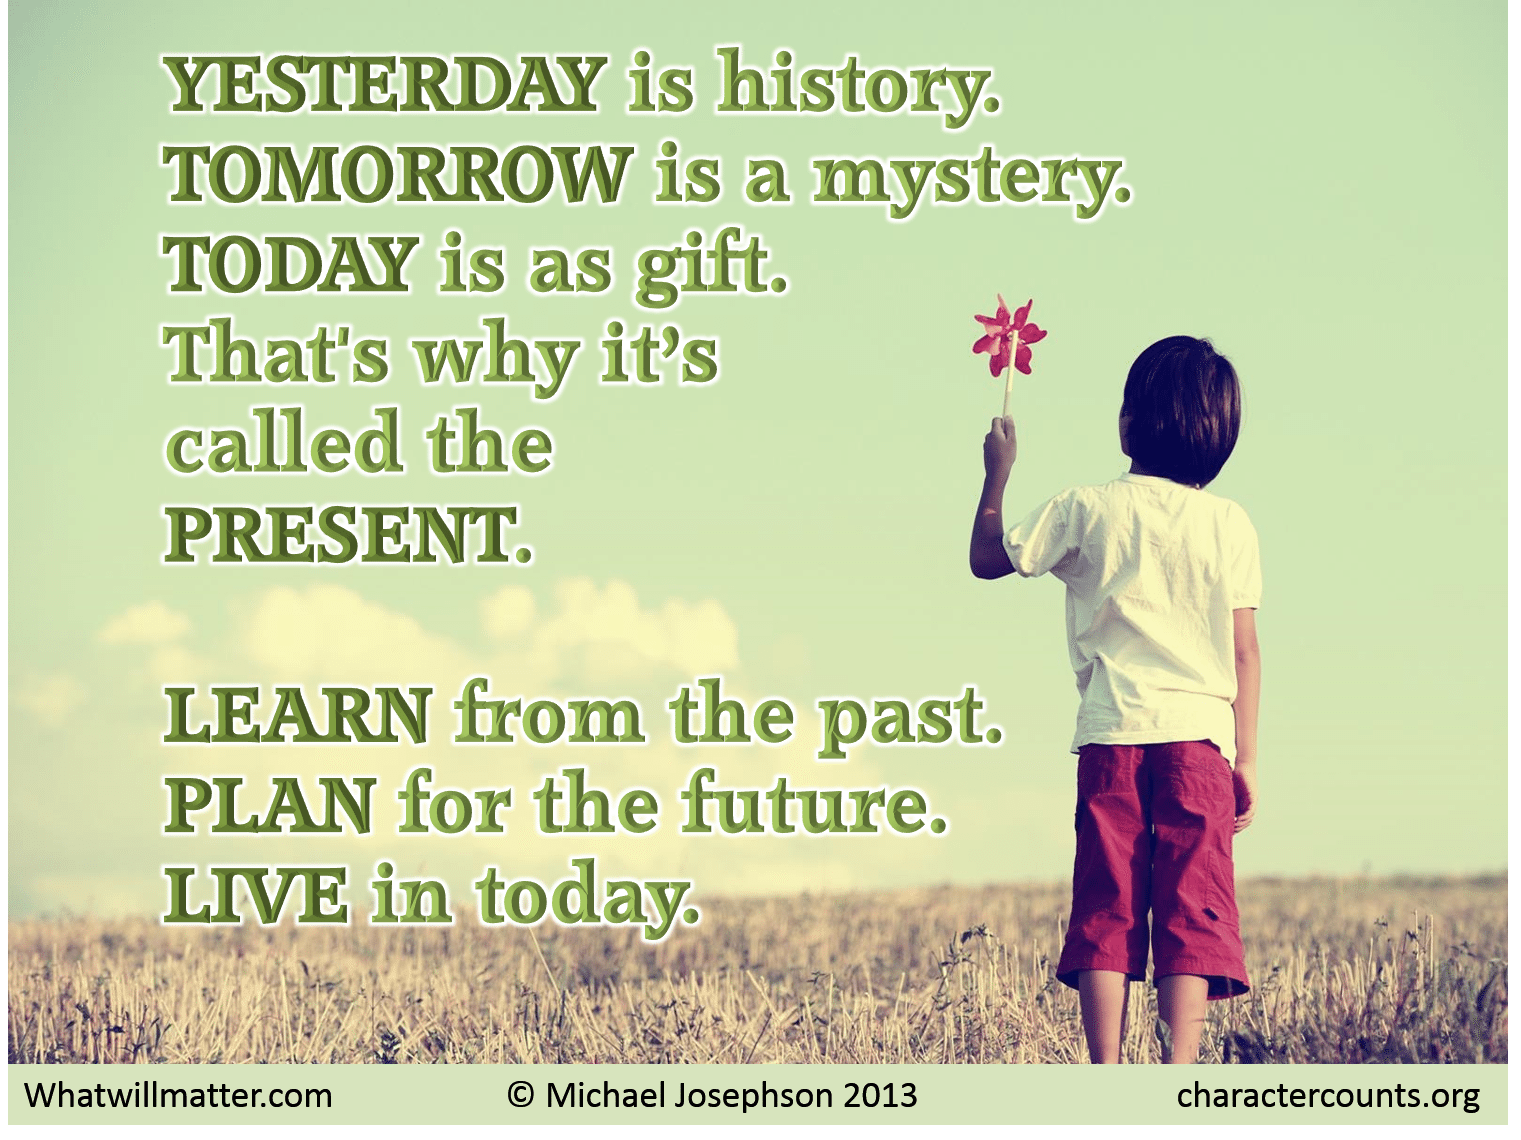 Is is mystery today gift a a but tomorrow Yesterday Tomorrow